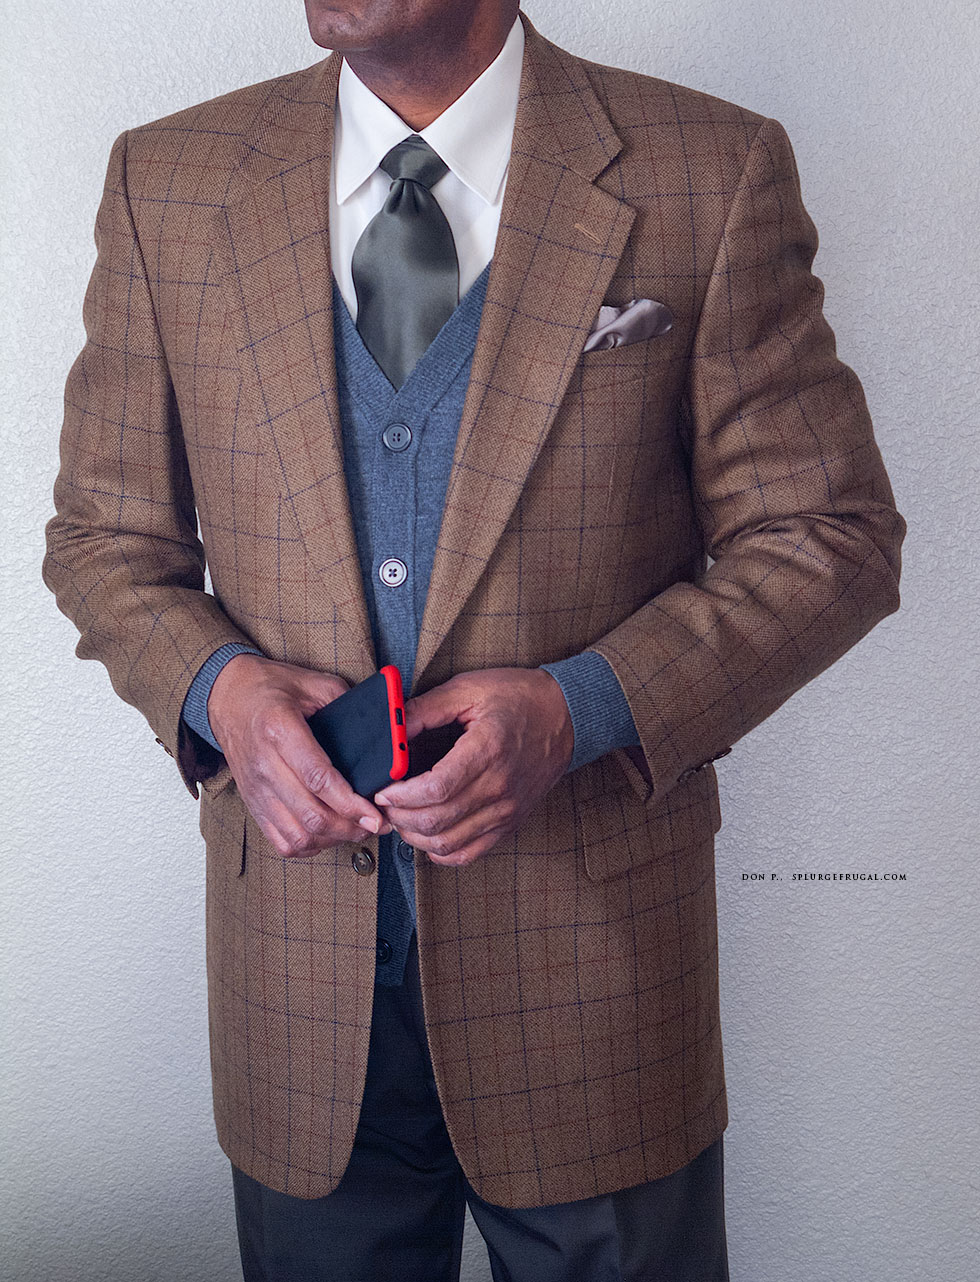 Stafford Suit Review - JCPenney - Sport Coat